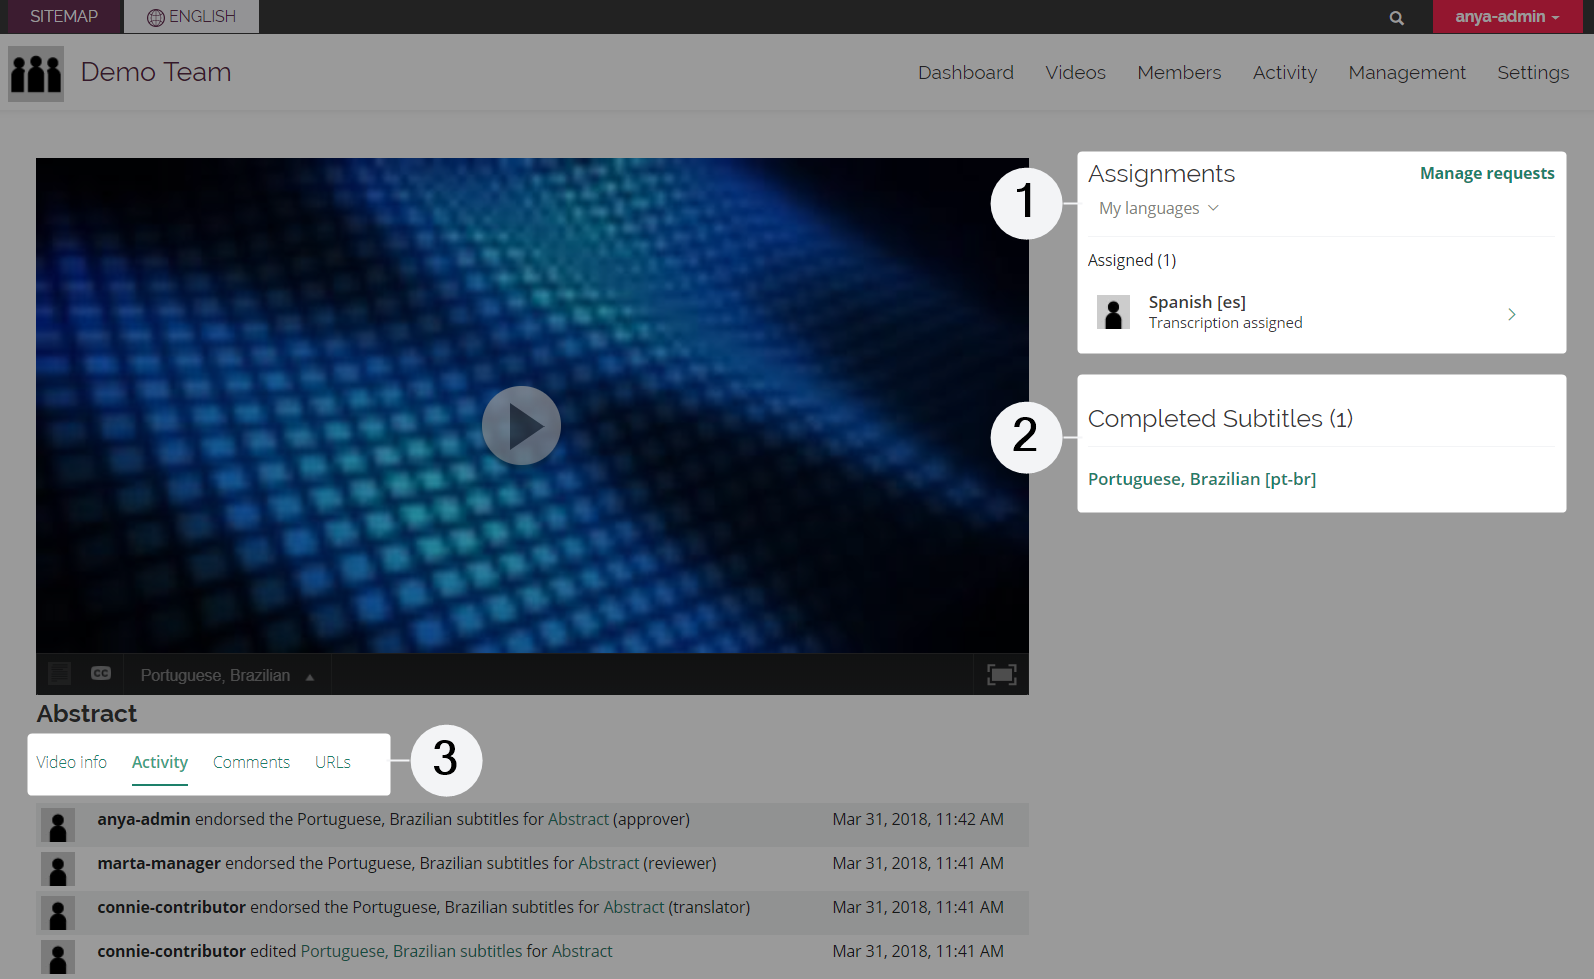 Video details page viewed by administrator of a collaboration team with three areas highlighted